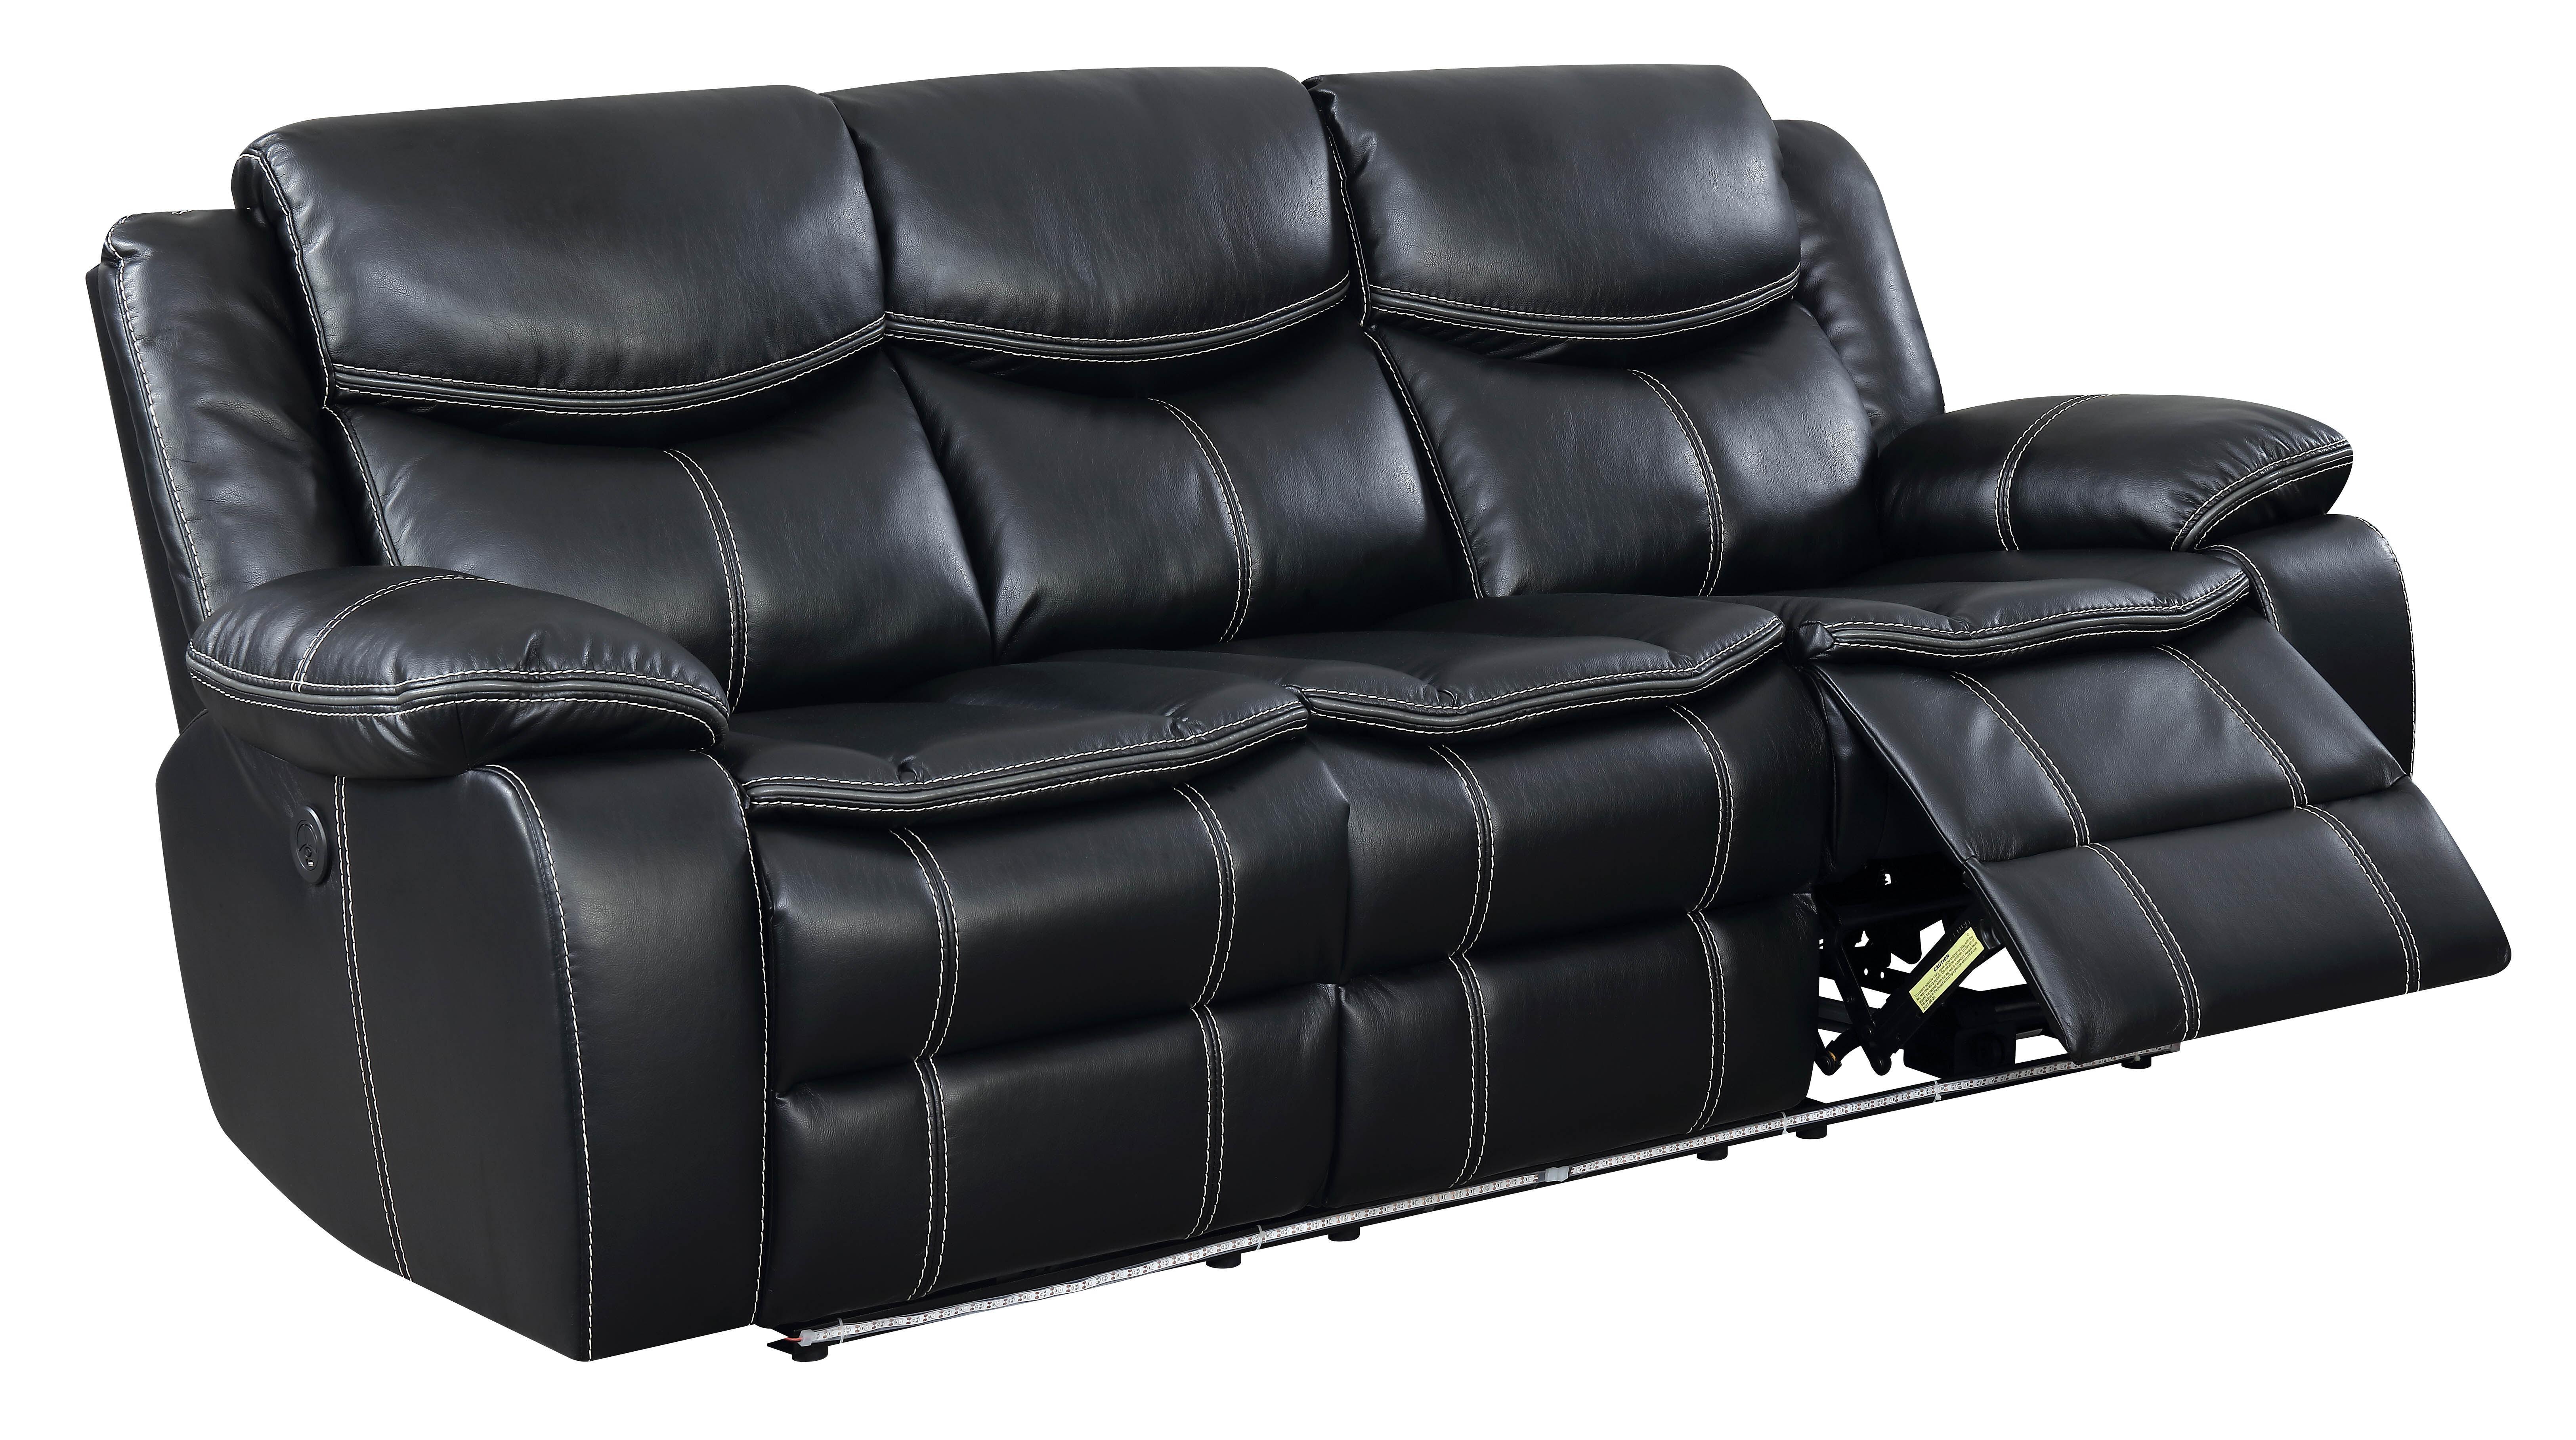 Sensational Faulk Reclining Sofa Inzonedesignstudio Interior Chair Design Inzonedesignstudiocom